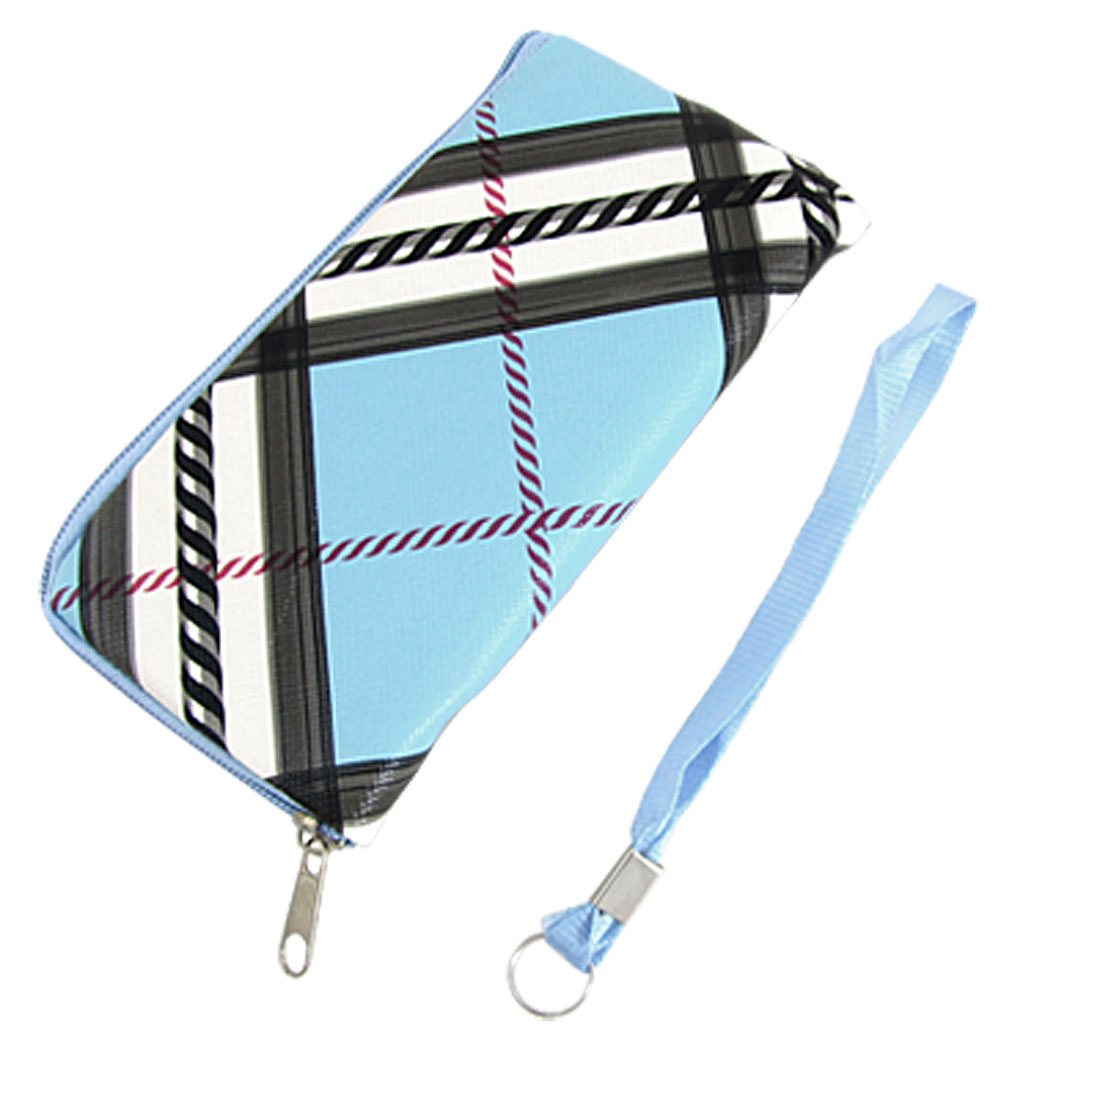 Zipper Design Bag Pouch Blue for Smartphone w Hand Strap